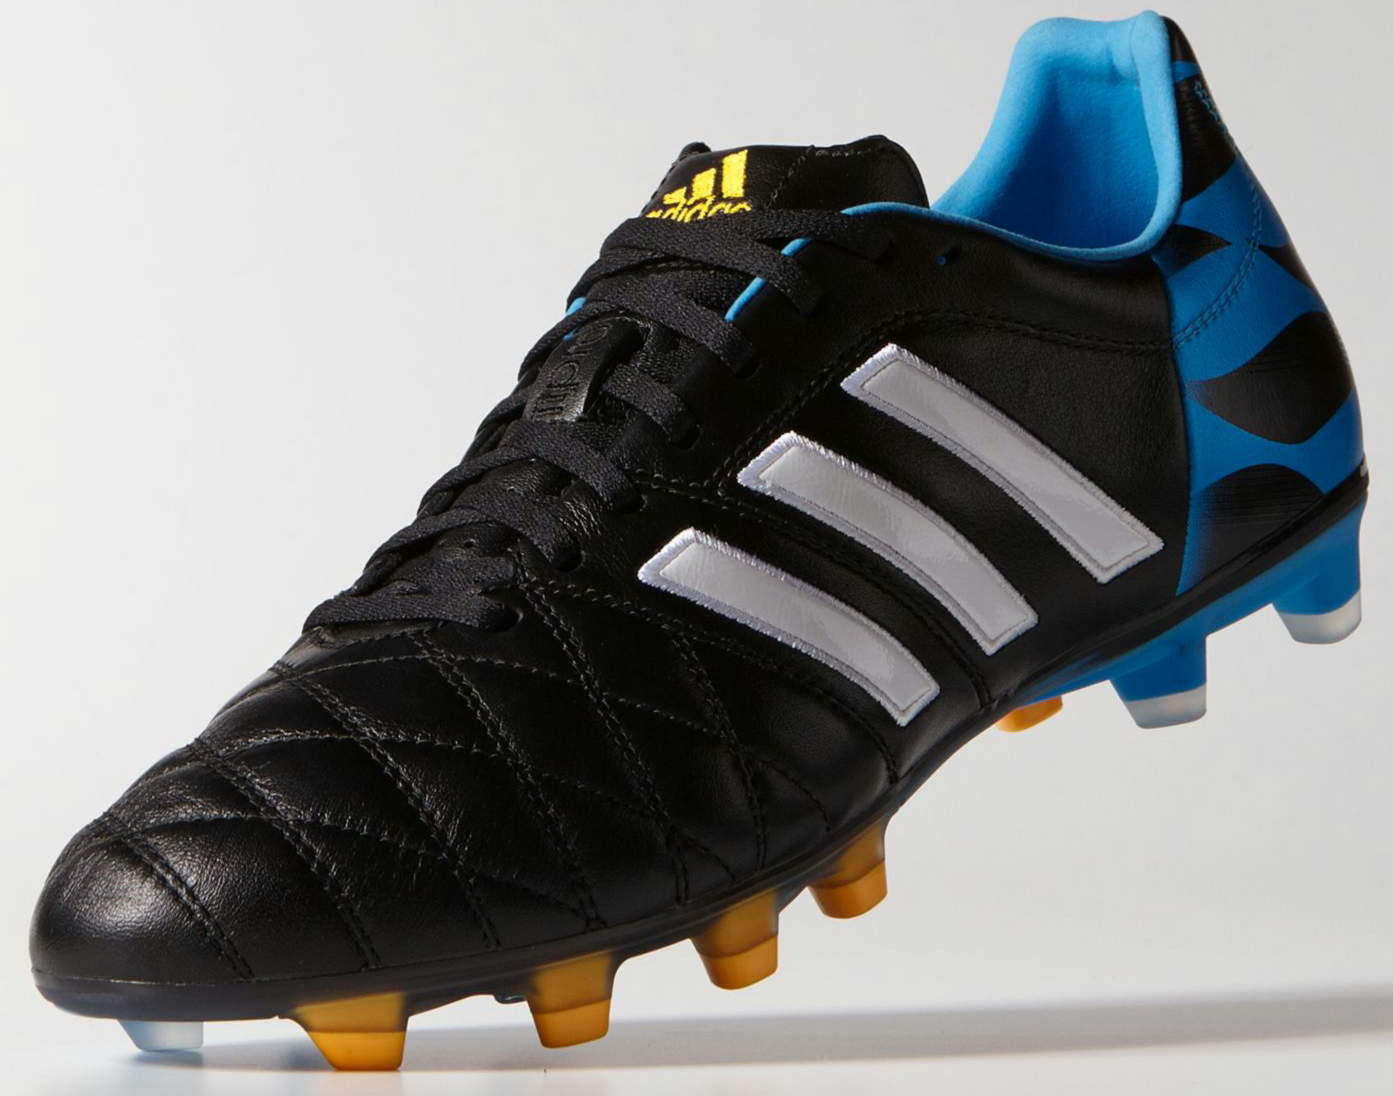 Adidas Adipure Black / Solar Blue / Running White. This is the new black  Adidas Adipure 11pro 2014-2015 Football Boot ...